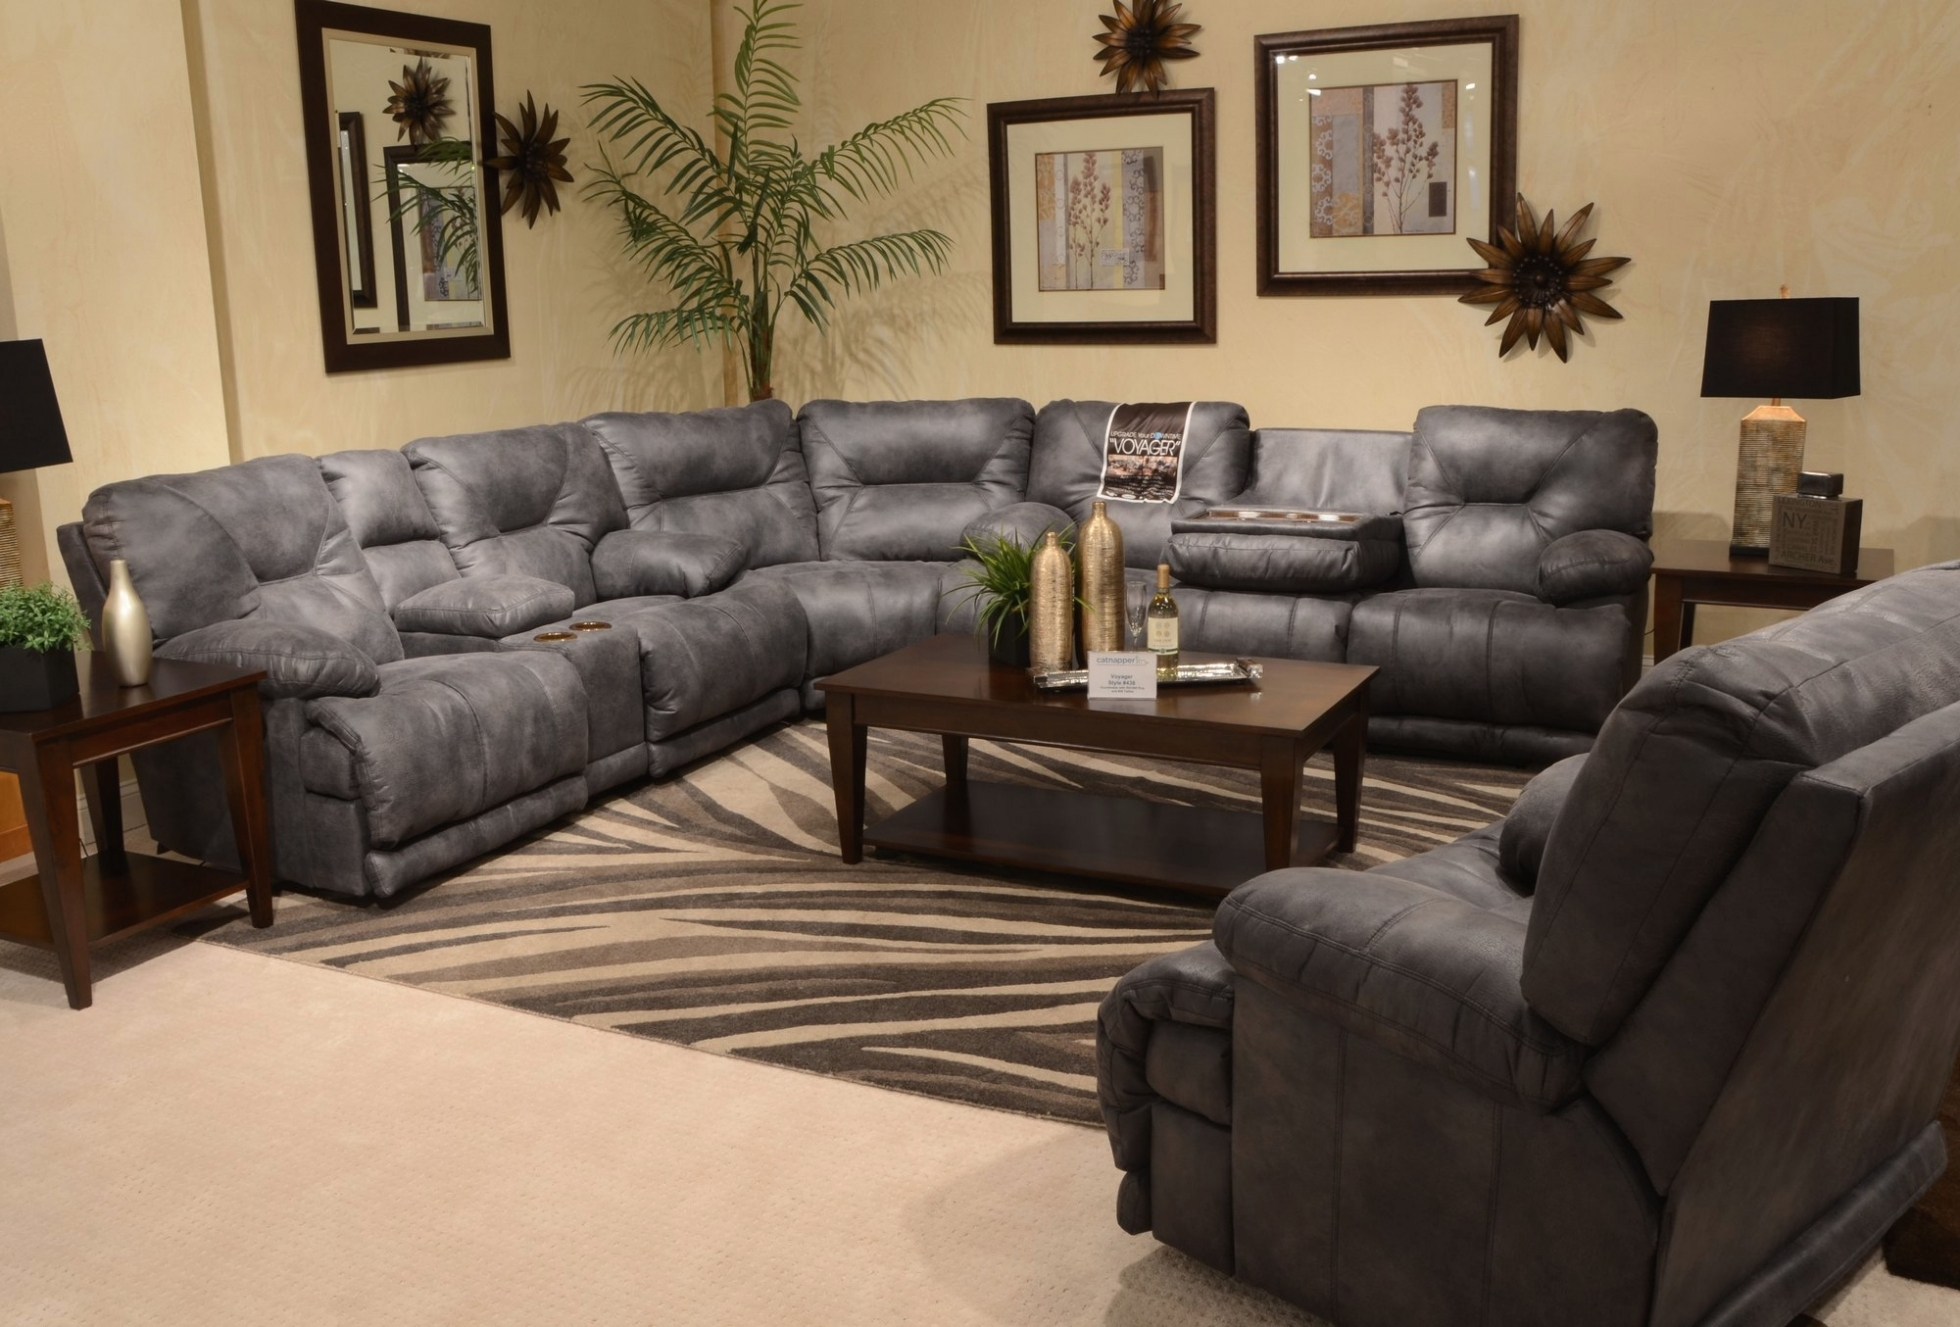 Living Room: 643845|Catnapper Voyager | Intended For Reclining Grey for Calder Grey 6 Piece Manual Reclining Sectionals (Image 20 of 30)